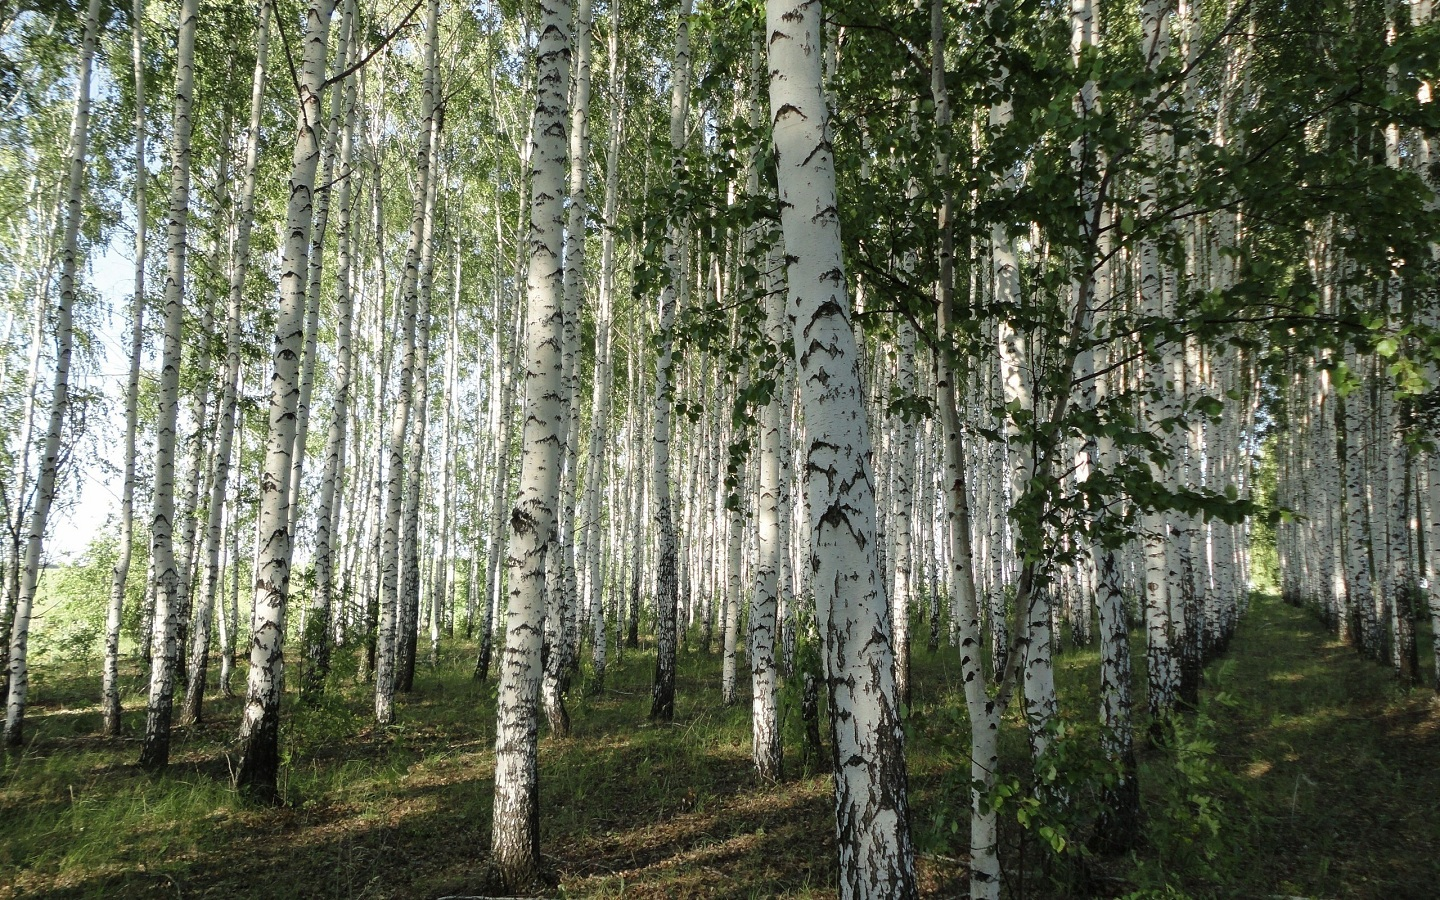 White Birch Tree Forest wallpaper   ForWallpapercom 1440x900